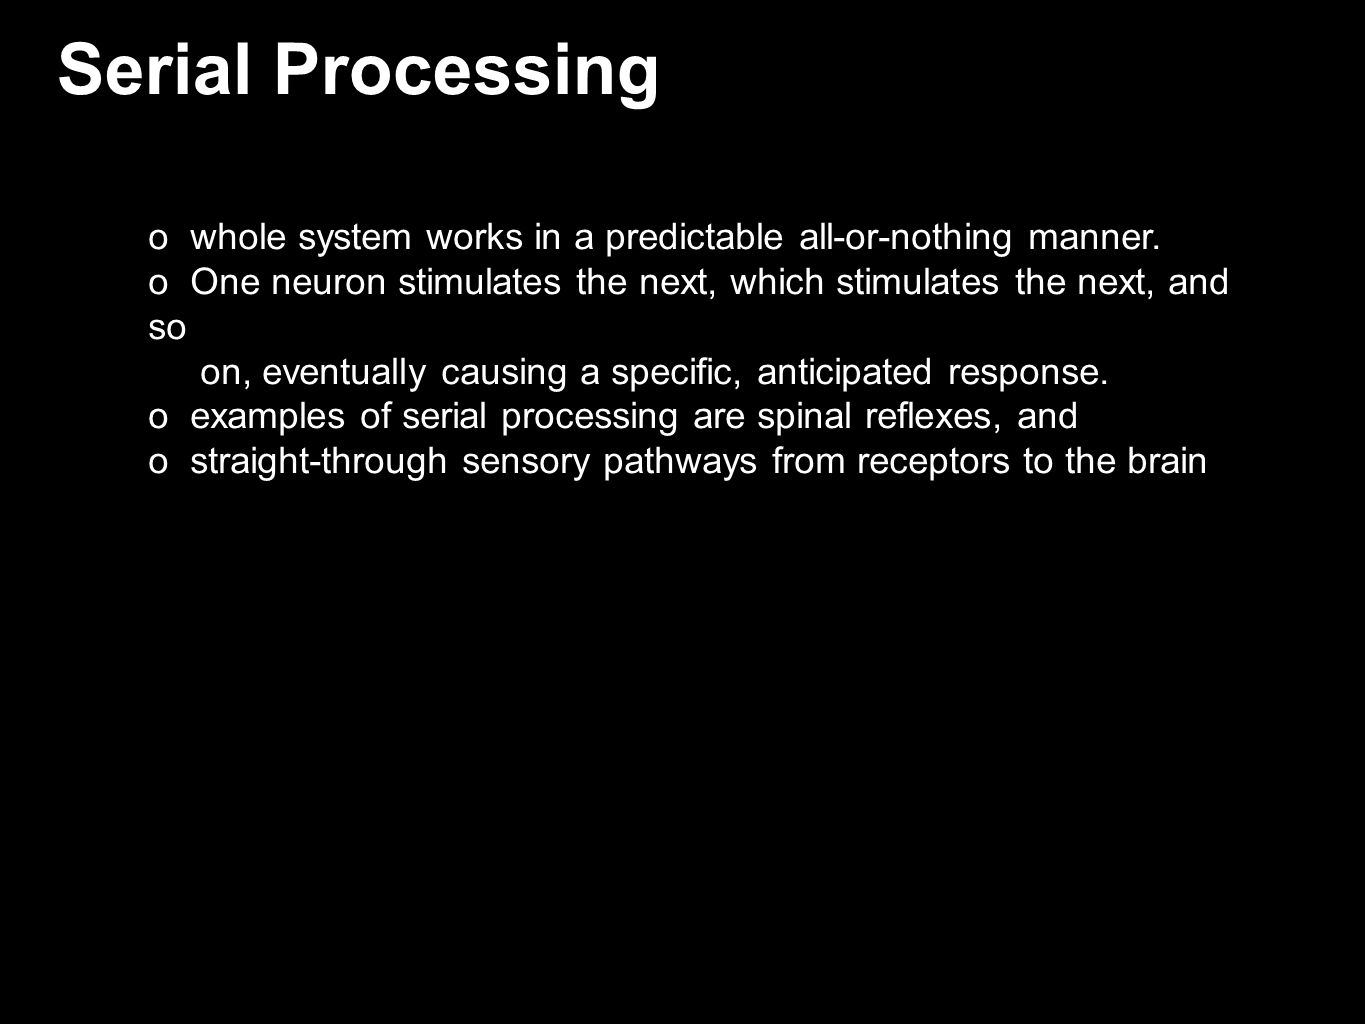 Serial Processing whole system works in a predictable all-or-nothing manner.